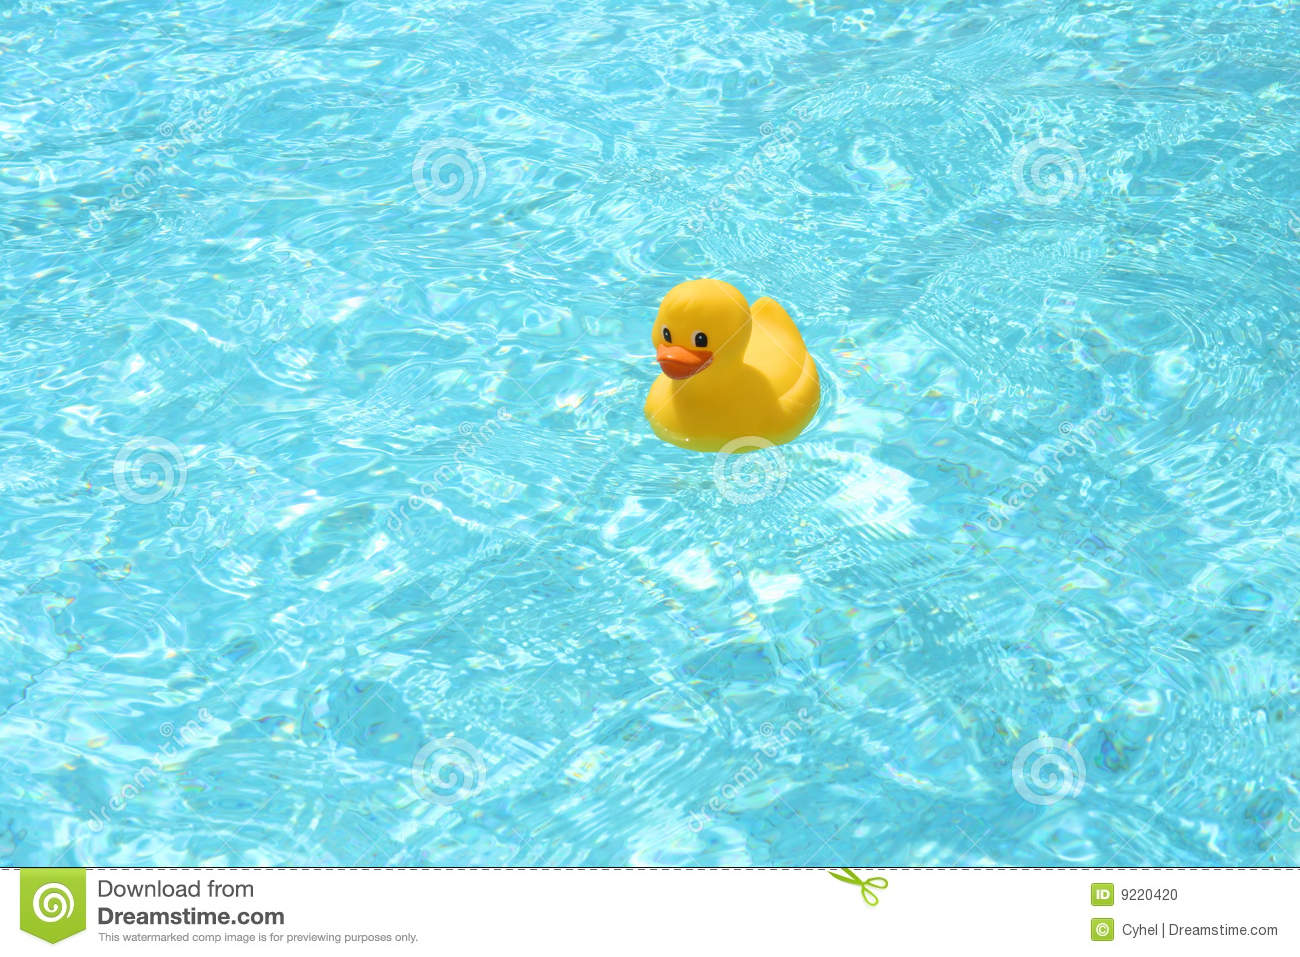 Toy Duck In The Pool Stock Photo Image 9220420